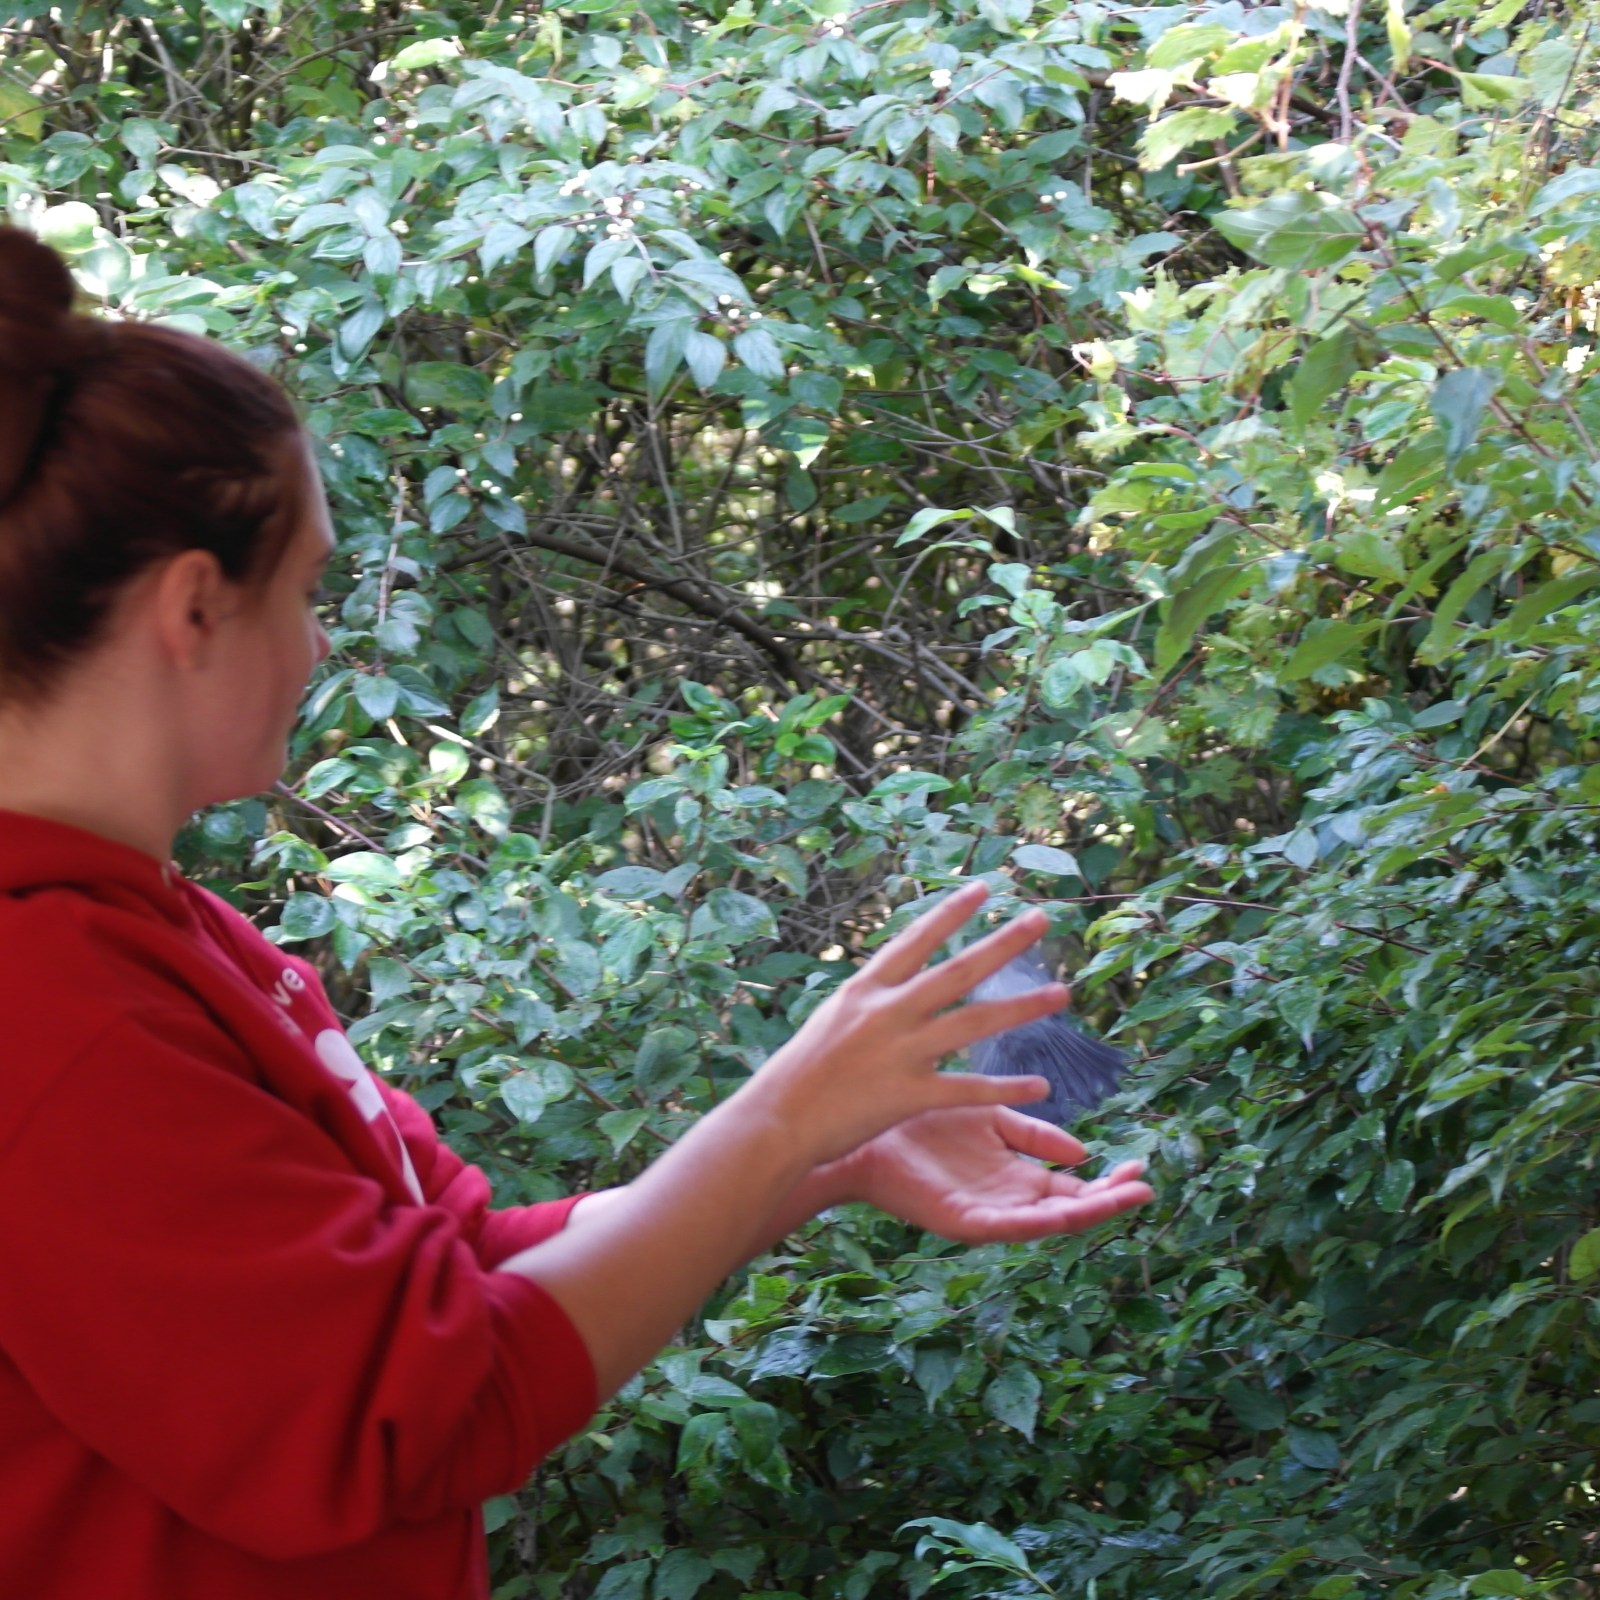 Junior Chelsea Fisher releasing a grey cat bird after it was tagged (Photo Credit: Brooke Schumacher)